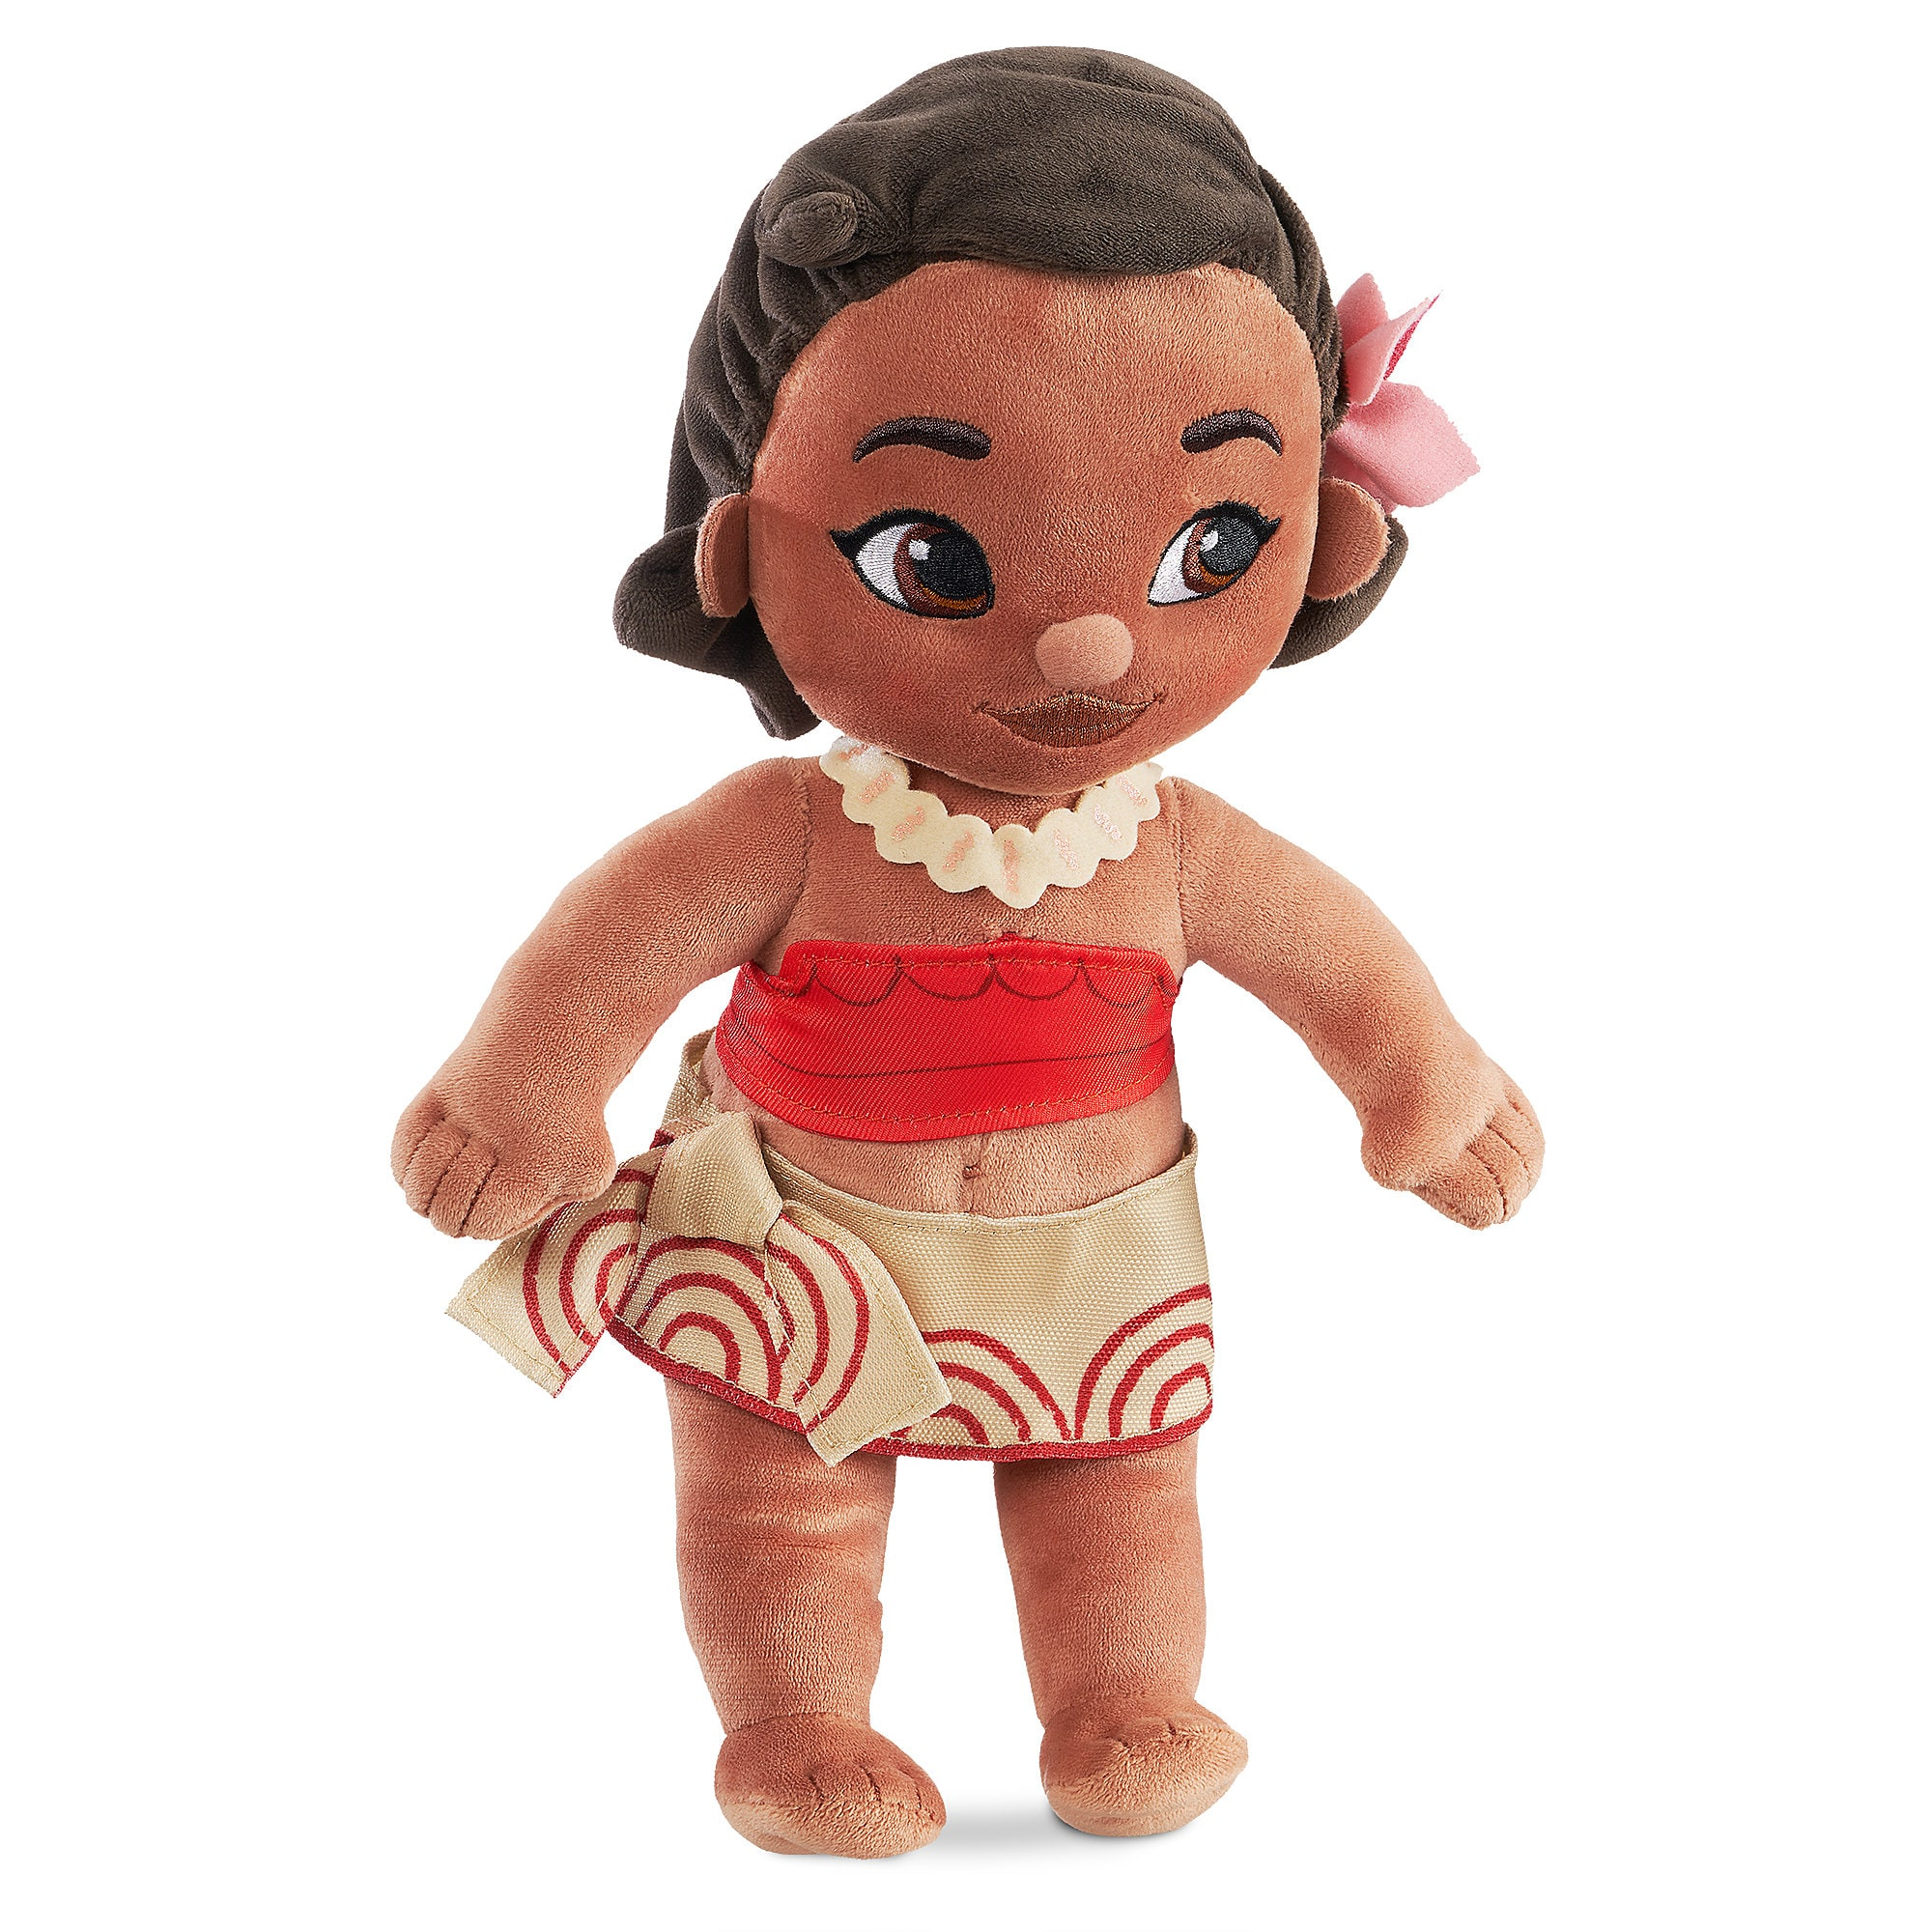 Disney Animators' Collection Moana Plush Doll - Small